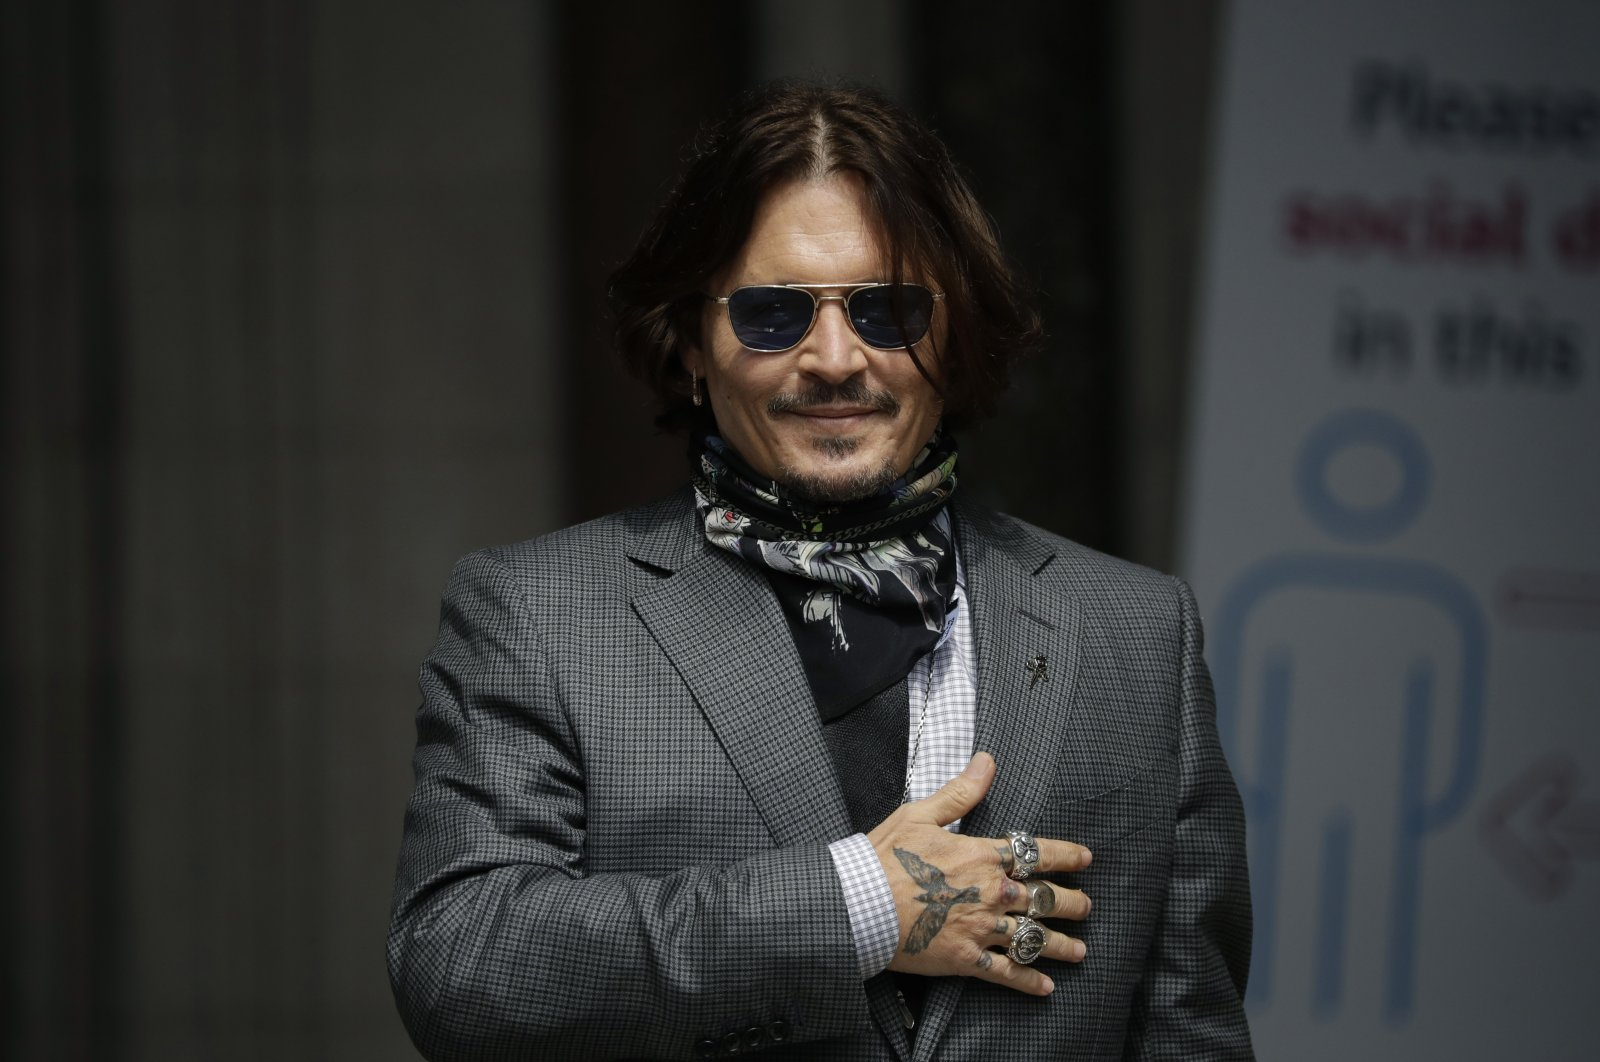 In this Thursday, July 23, 2020 file photo, U.S. actor Johnny Depp gestures to fans and the media as he arrives at the High Court in London. (AP Photo)